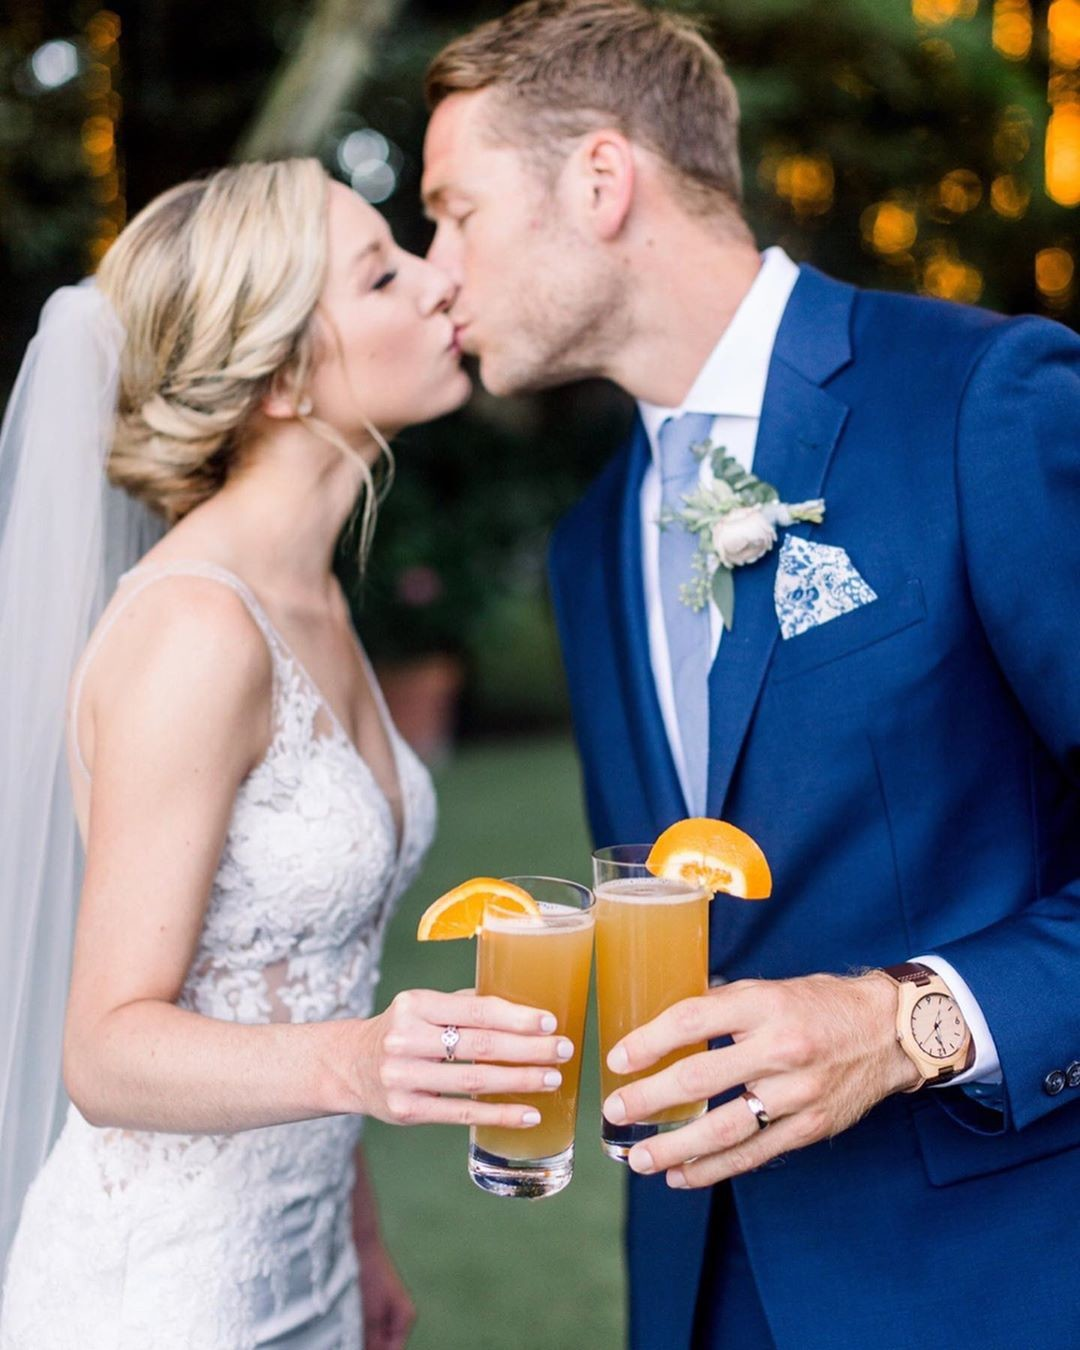 pretty little details from the best day ever #chremma